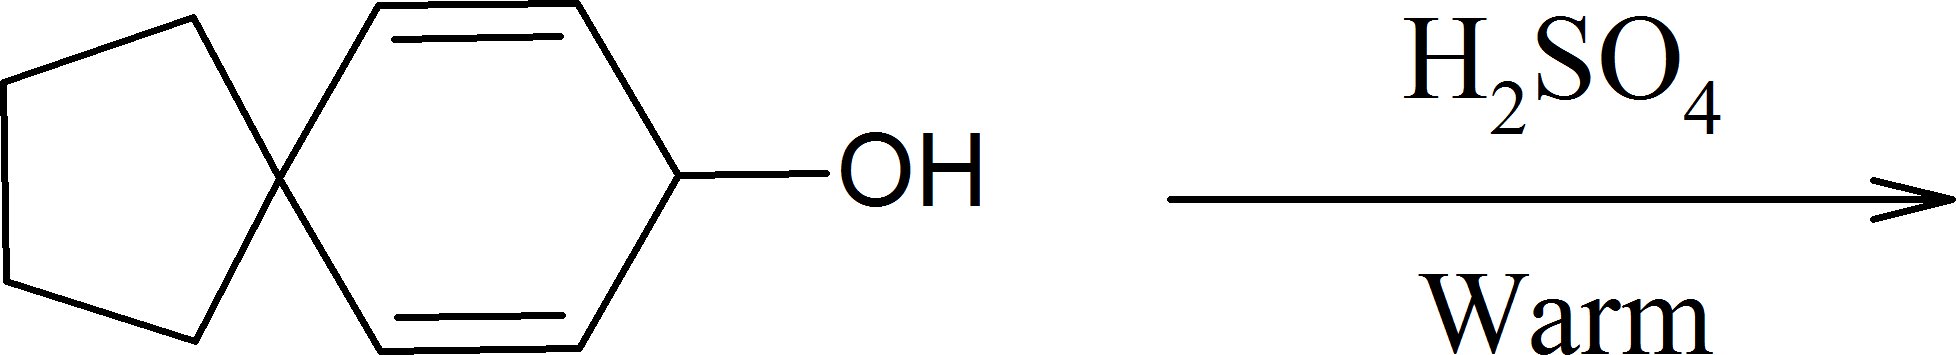 Image shows The Major Product Formed in Reaction